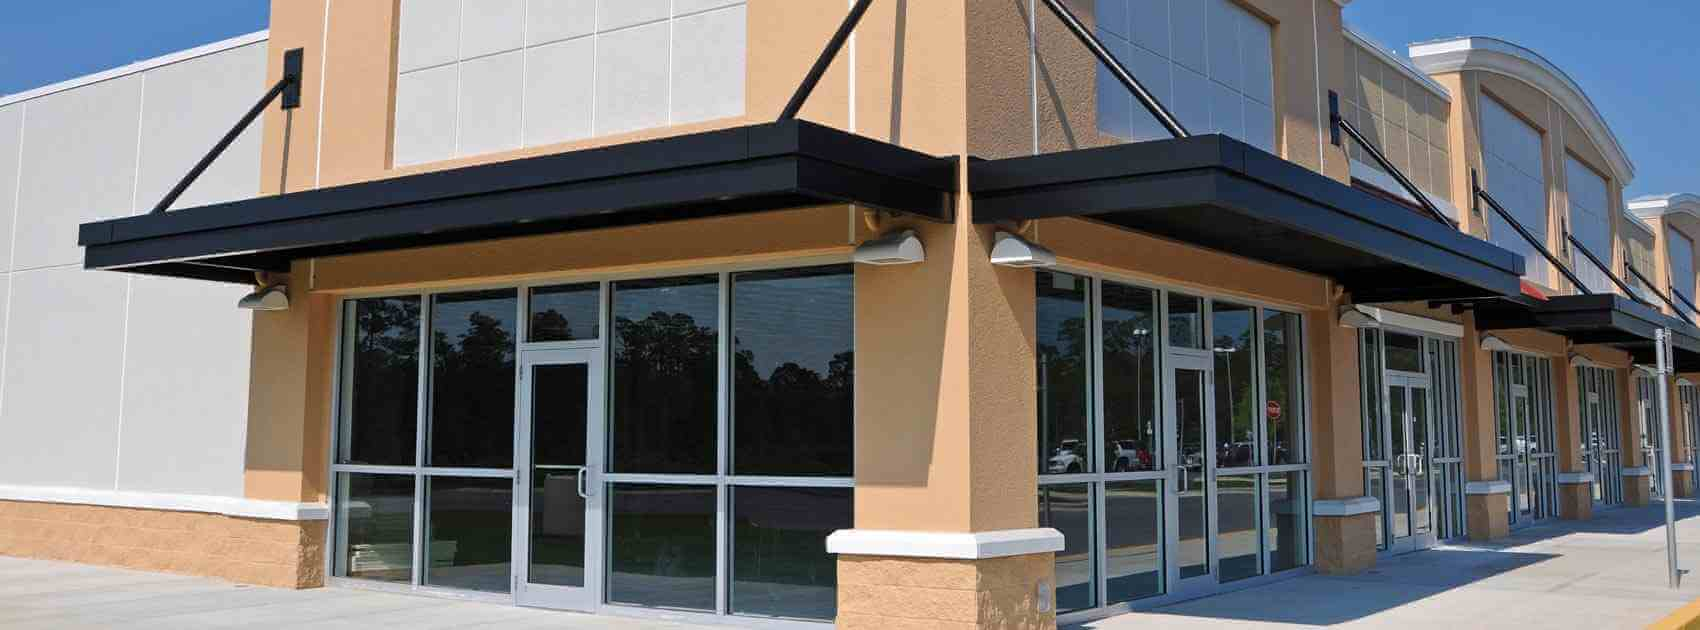 Commercial Glass Repair